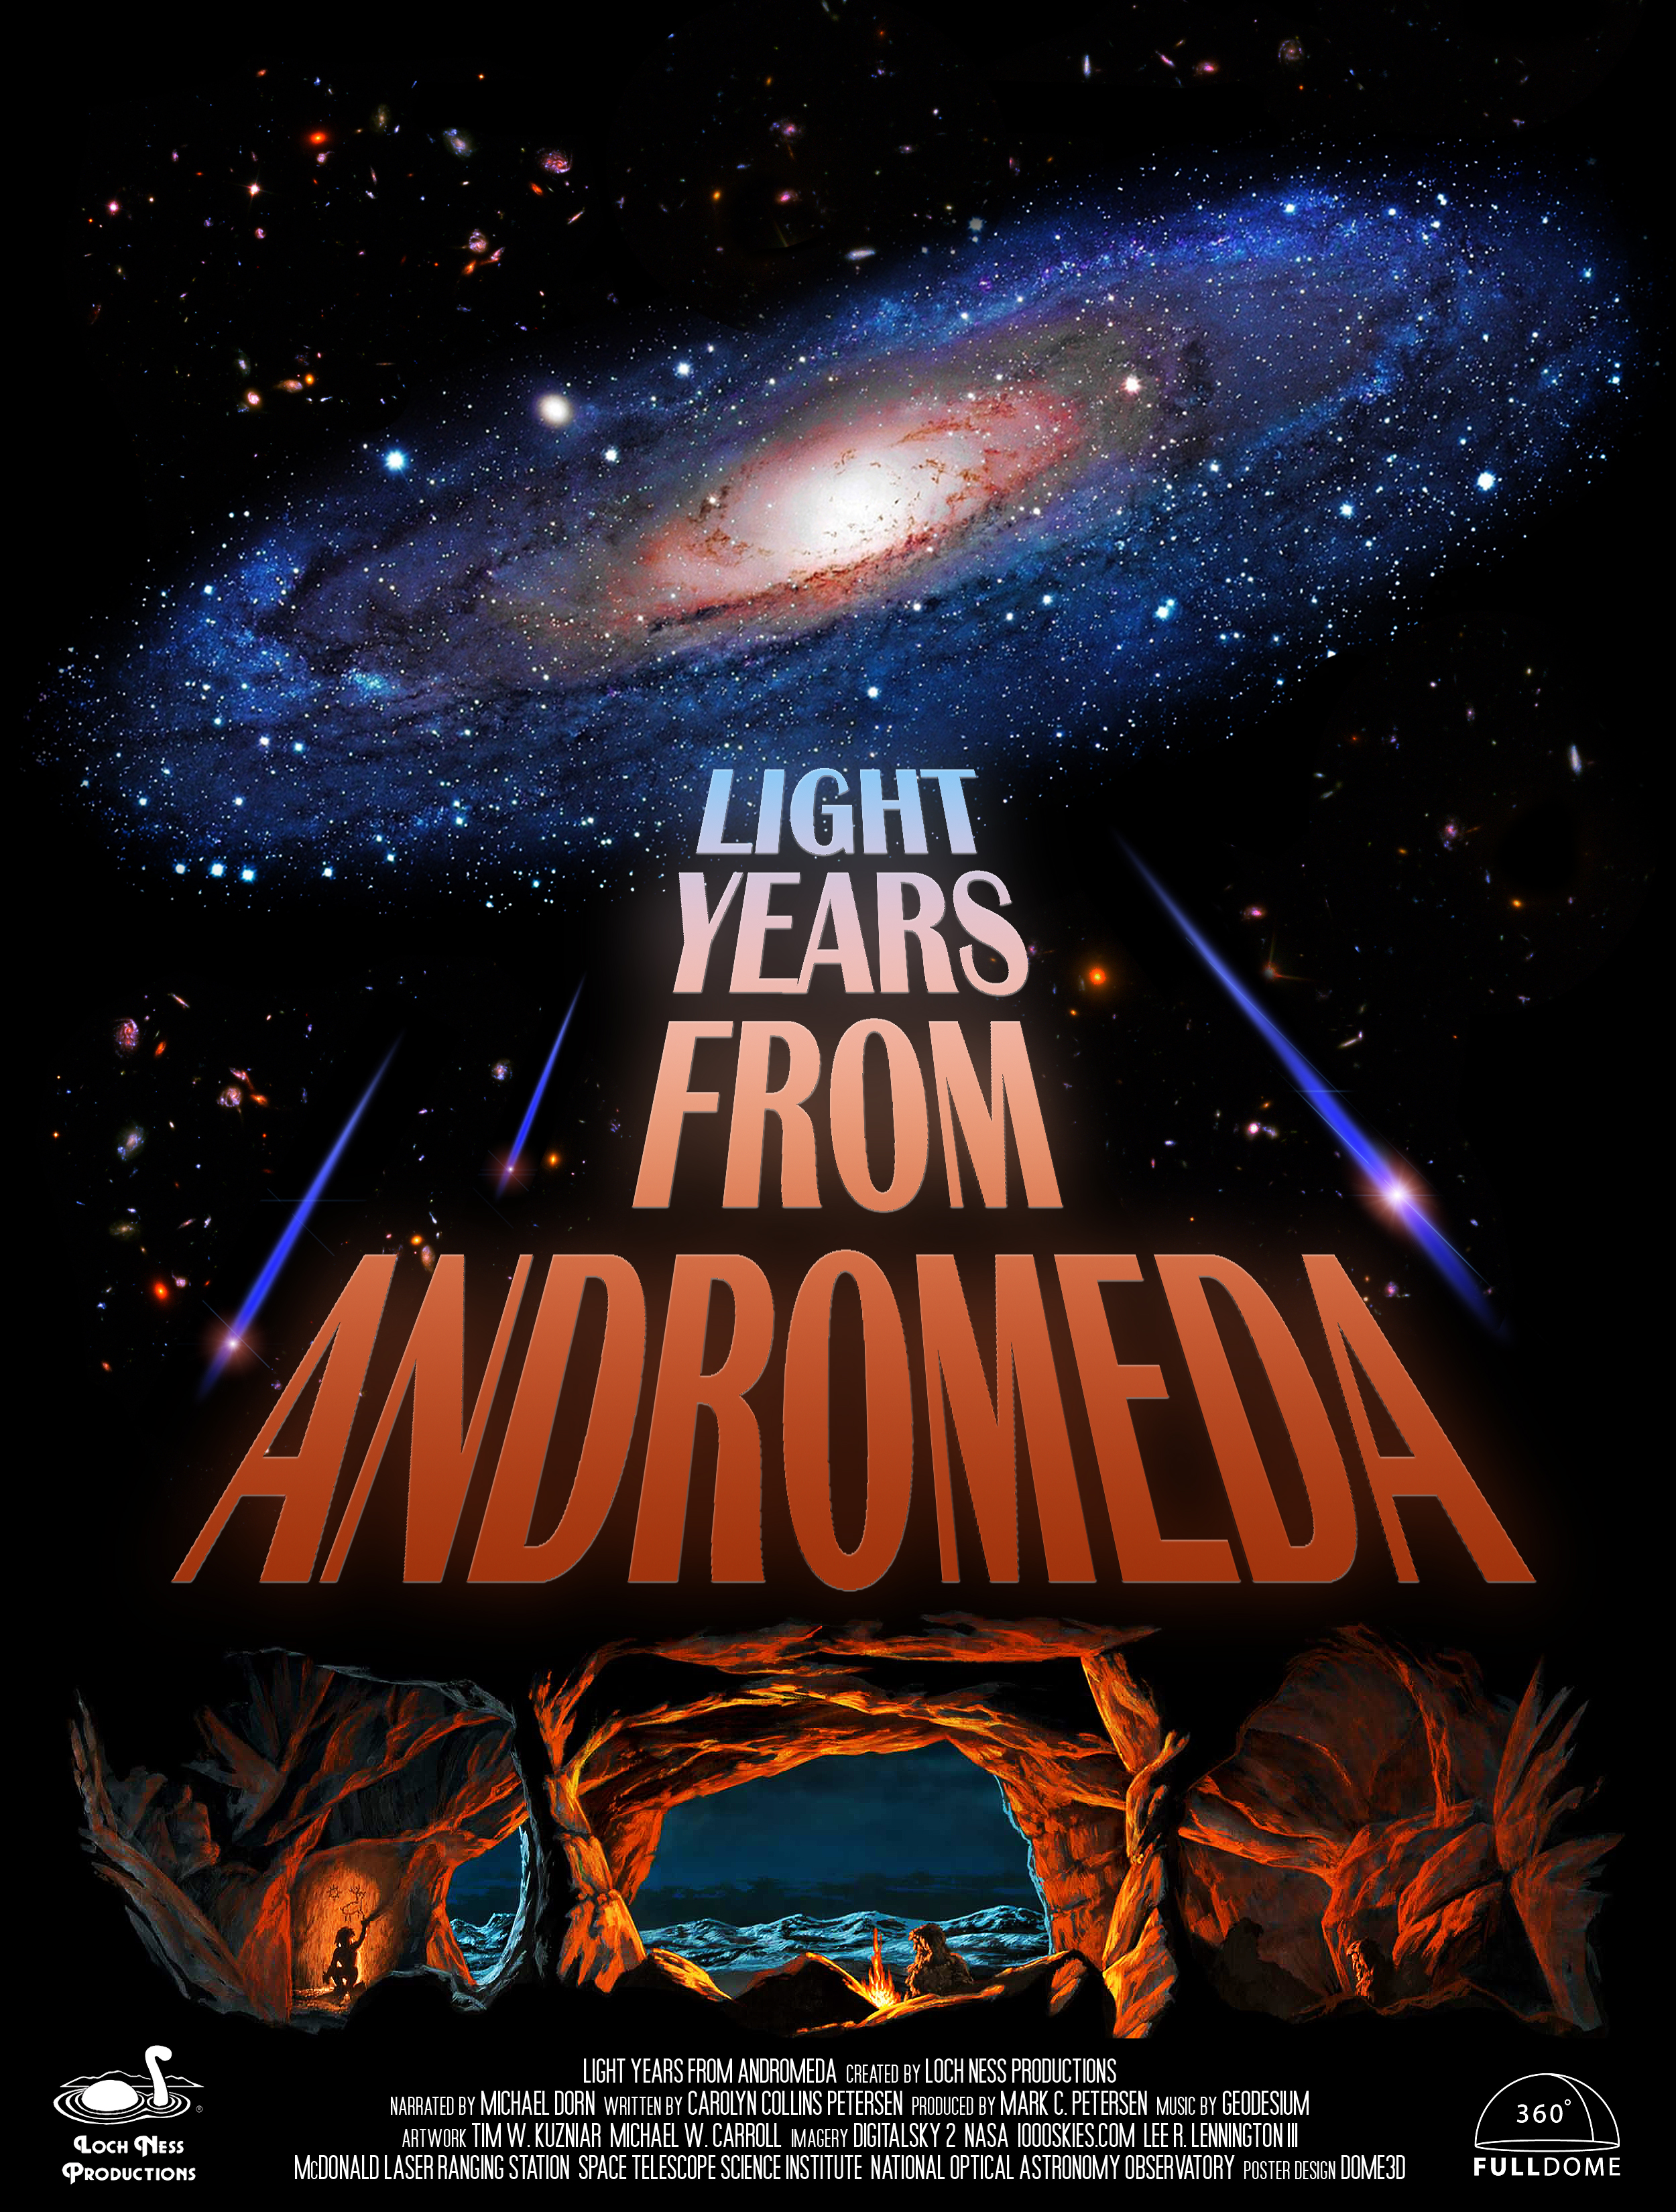 Lnp Light Years From Andromeda